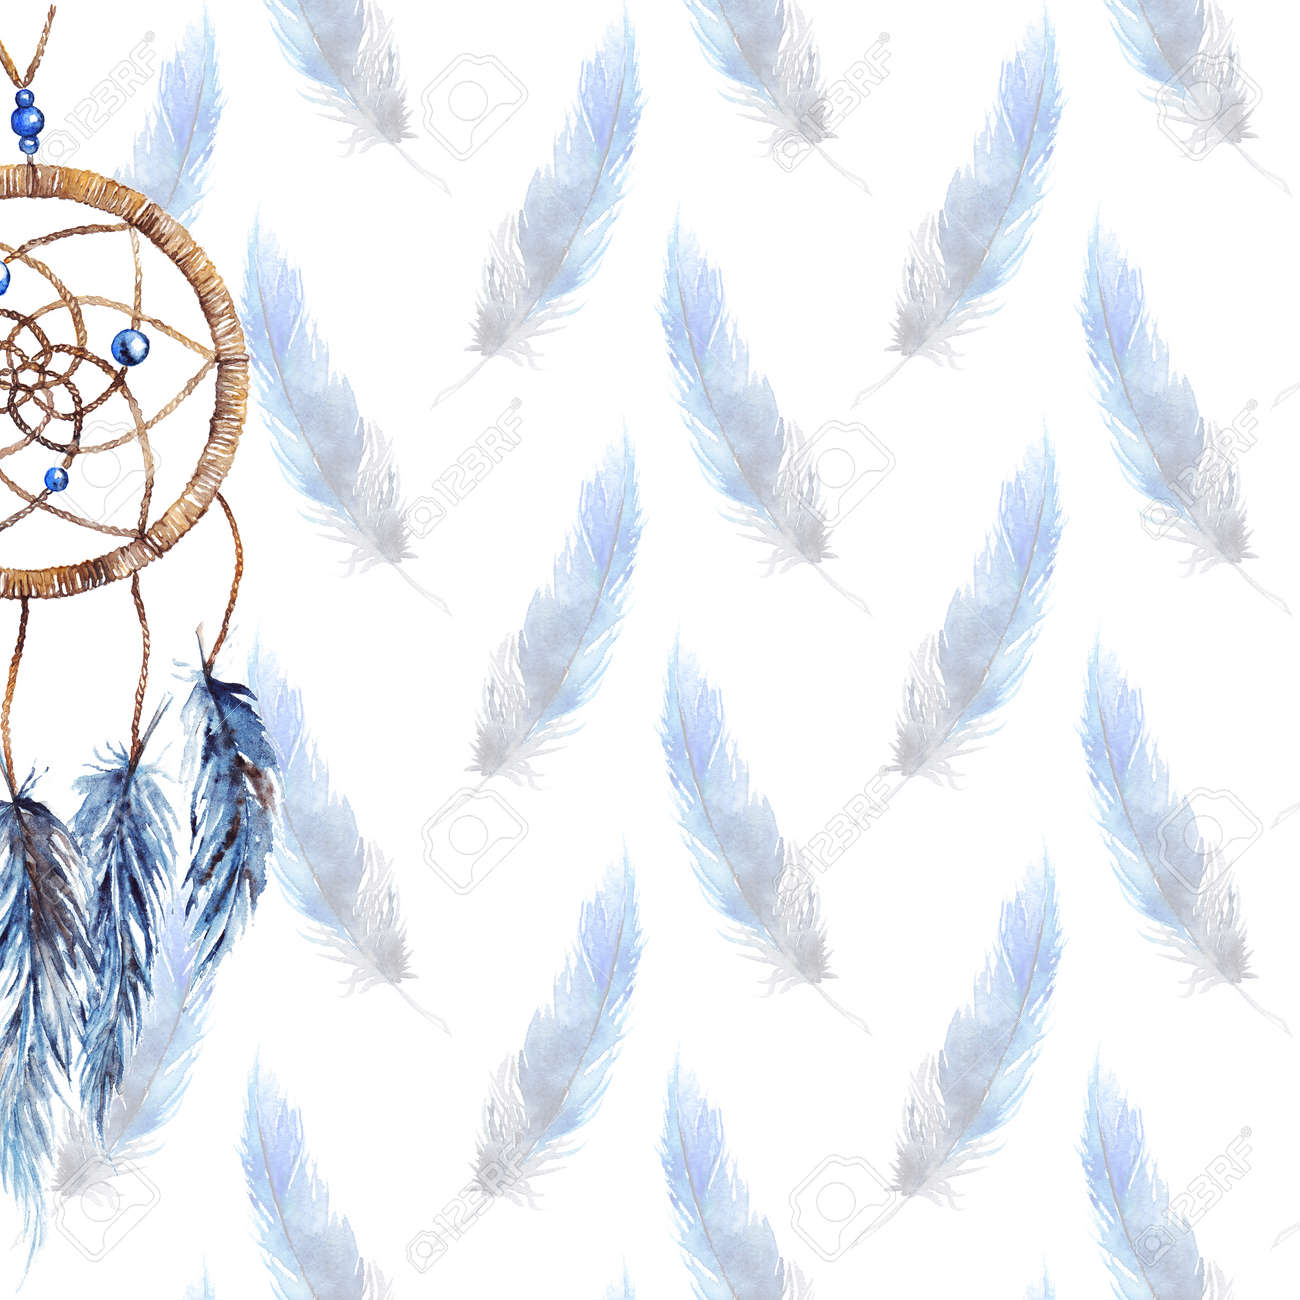 watercolor ethnic tribal hand made feather dreamcatcher template